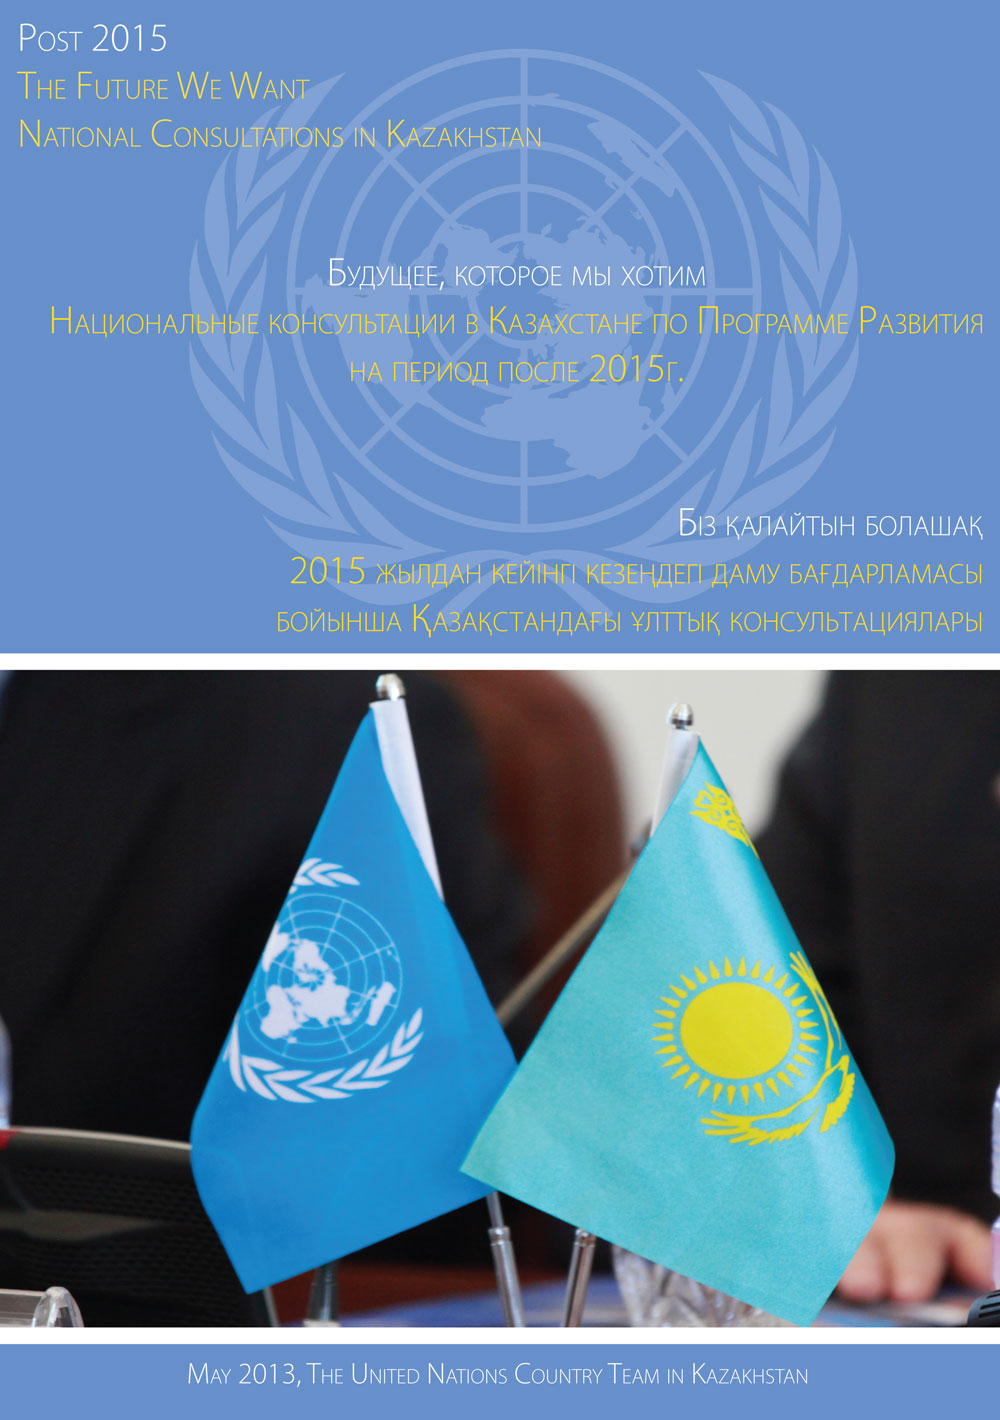 Post 2015 The Future We Want: National Consultations in Kazakhstan